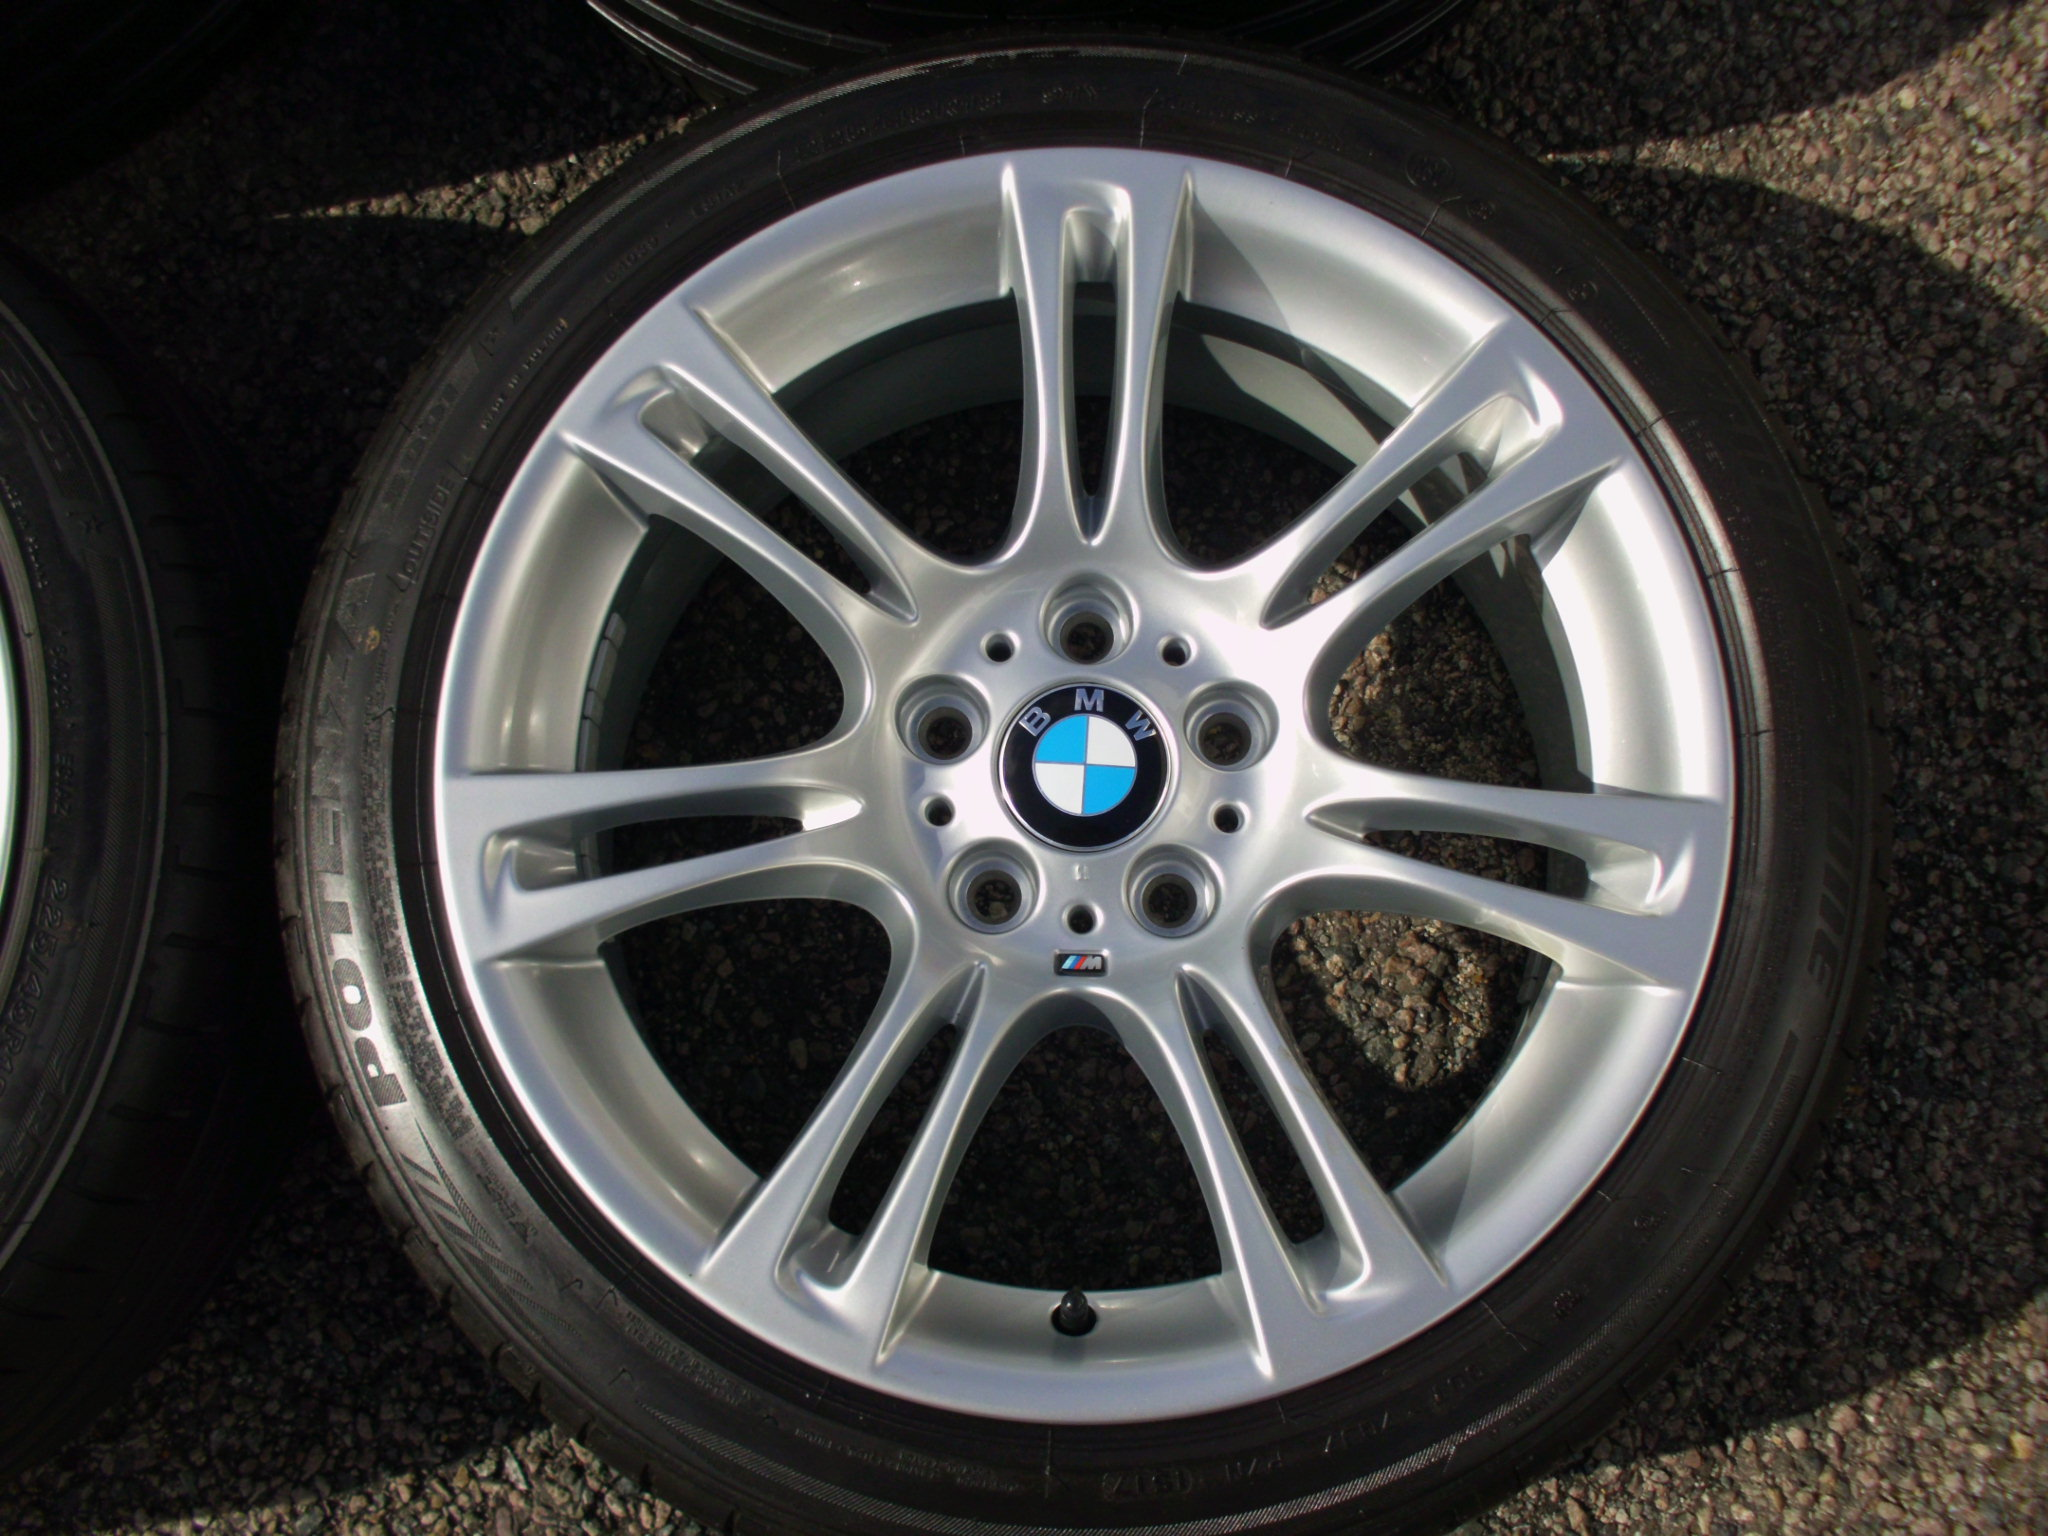 "USED 18"" GENUINE STYLE 350 M SPORT ALLOY WHEELS, WIDER REARS,FULLY REFURBED INC VERY GOOD BRIDGESTONE RUNFLAT TYRES"